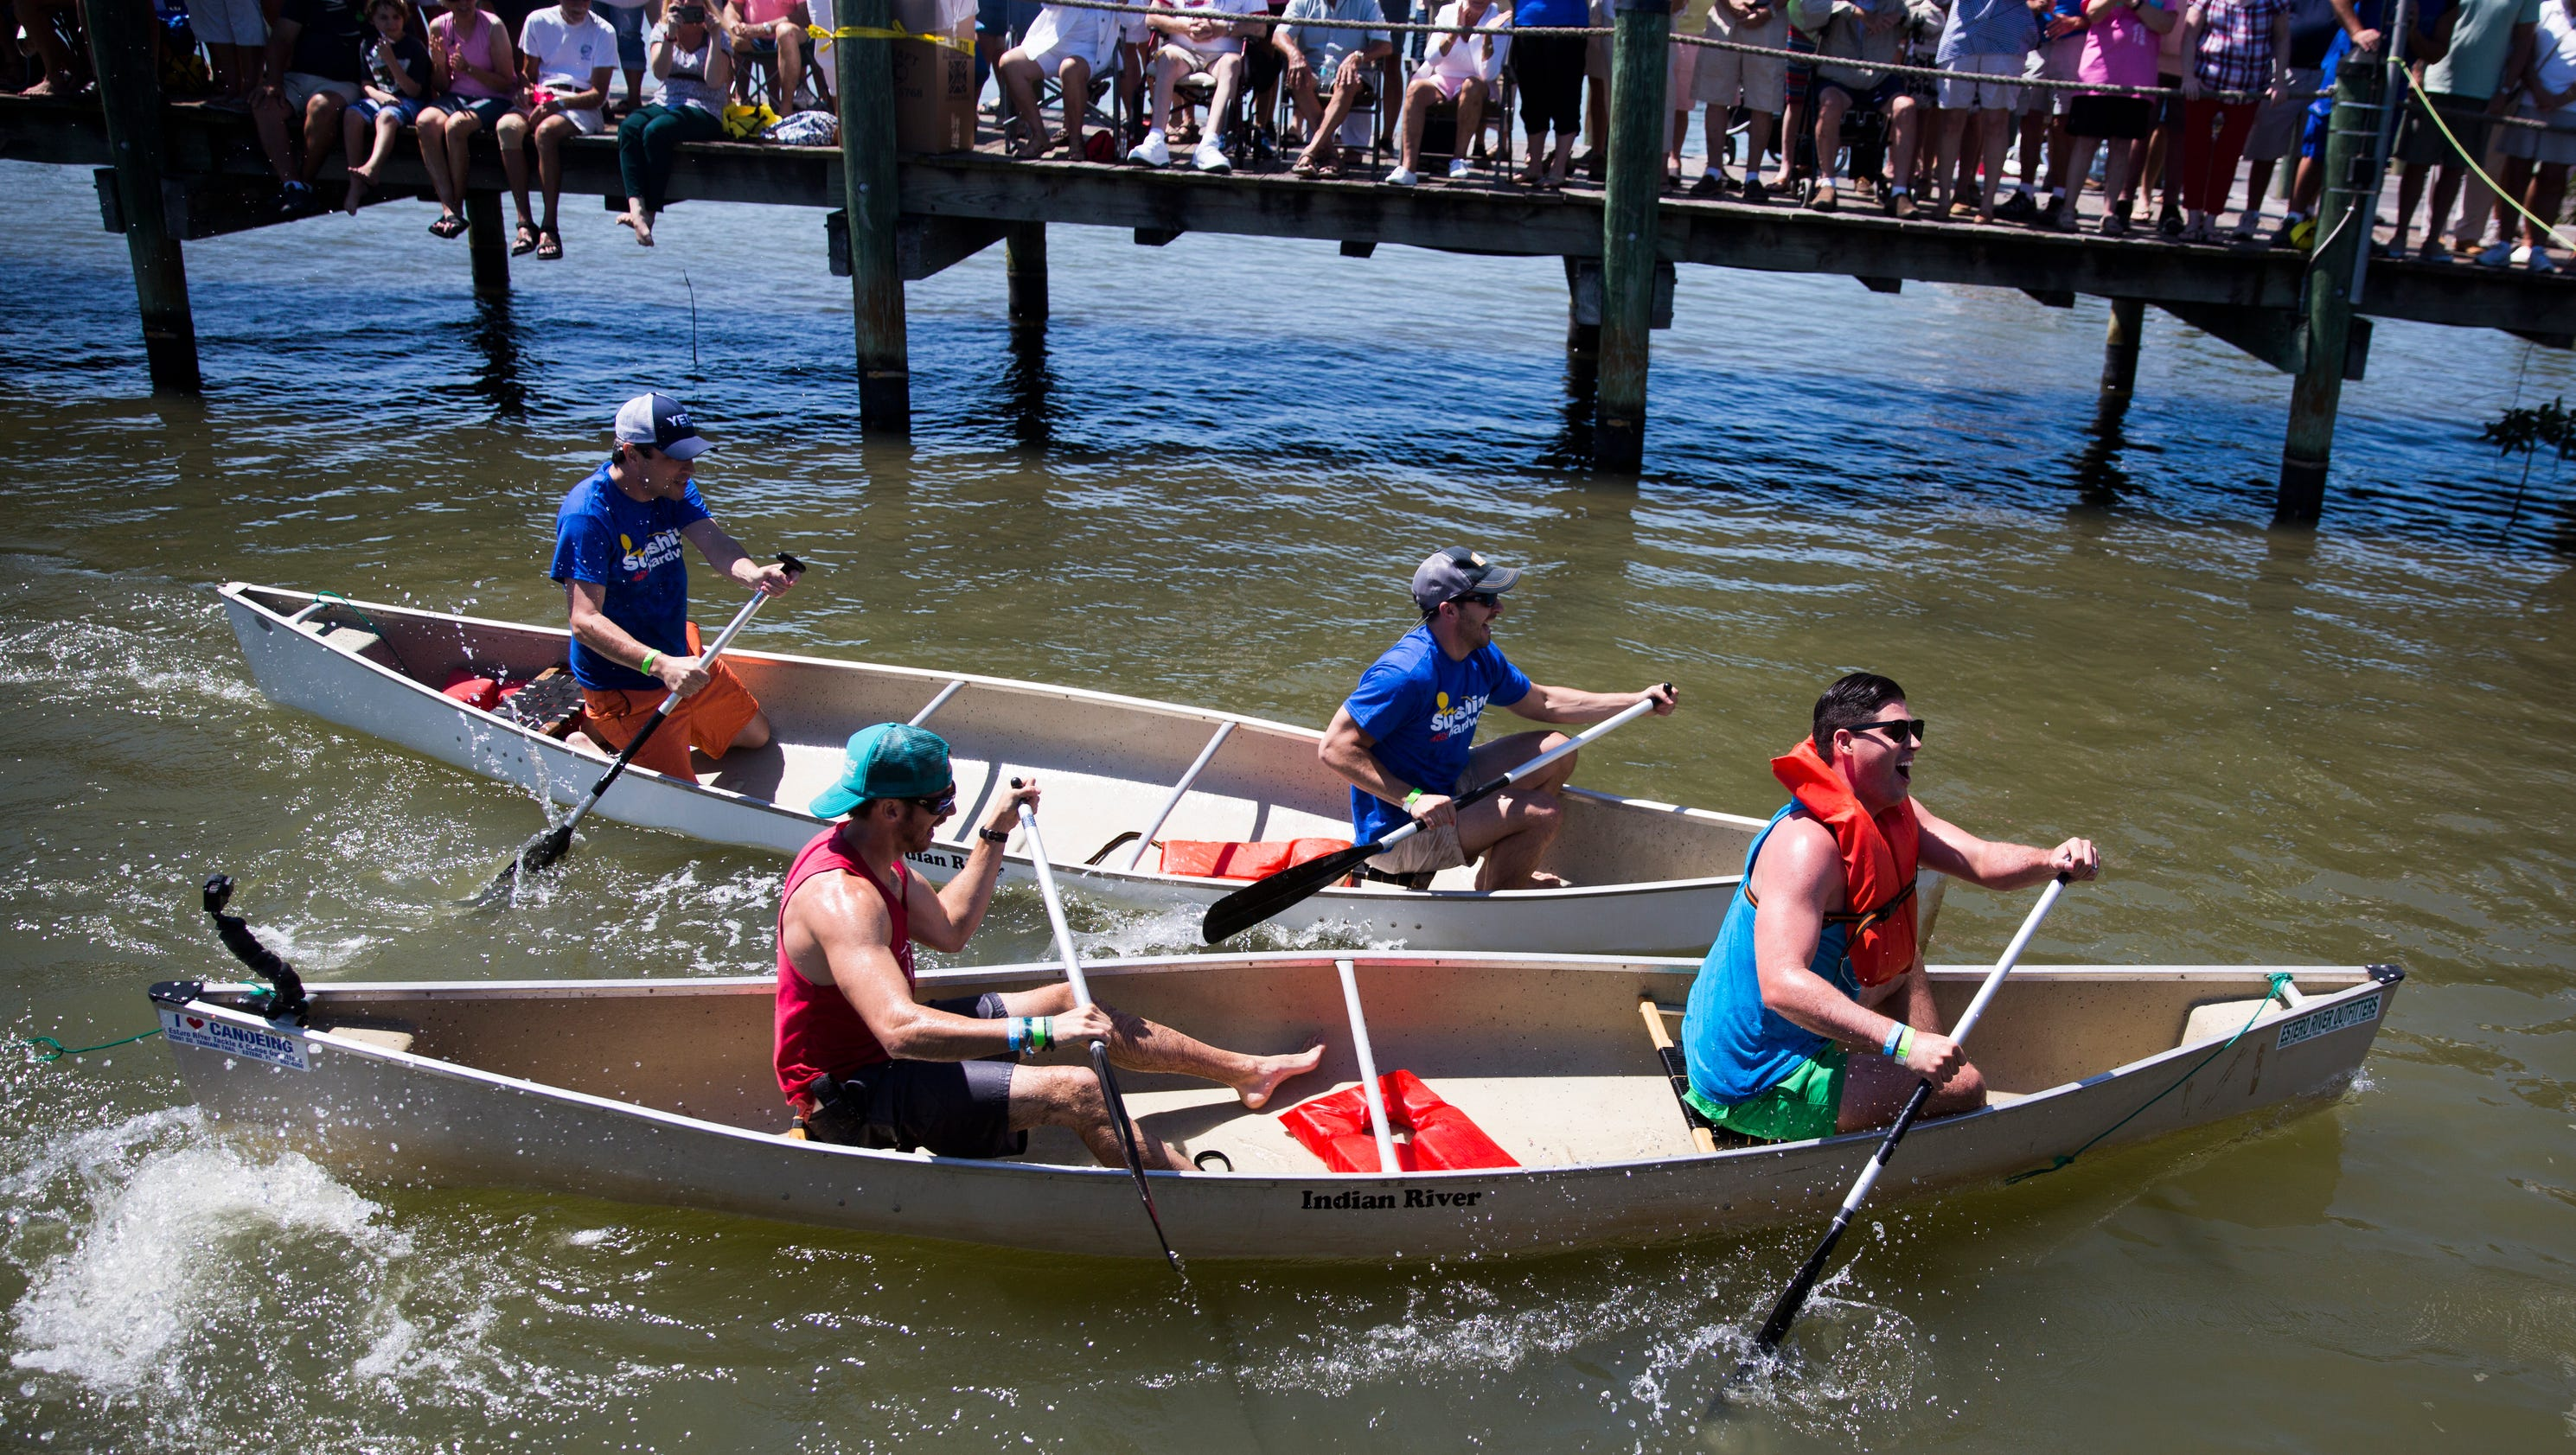 an analysis of the canoe race 100th birthday canoe race in july   a canucks fan's analysis of pr august 13, 2018 enough with the apologies august 13, 2018 natural resources minister speaking in city.